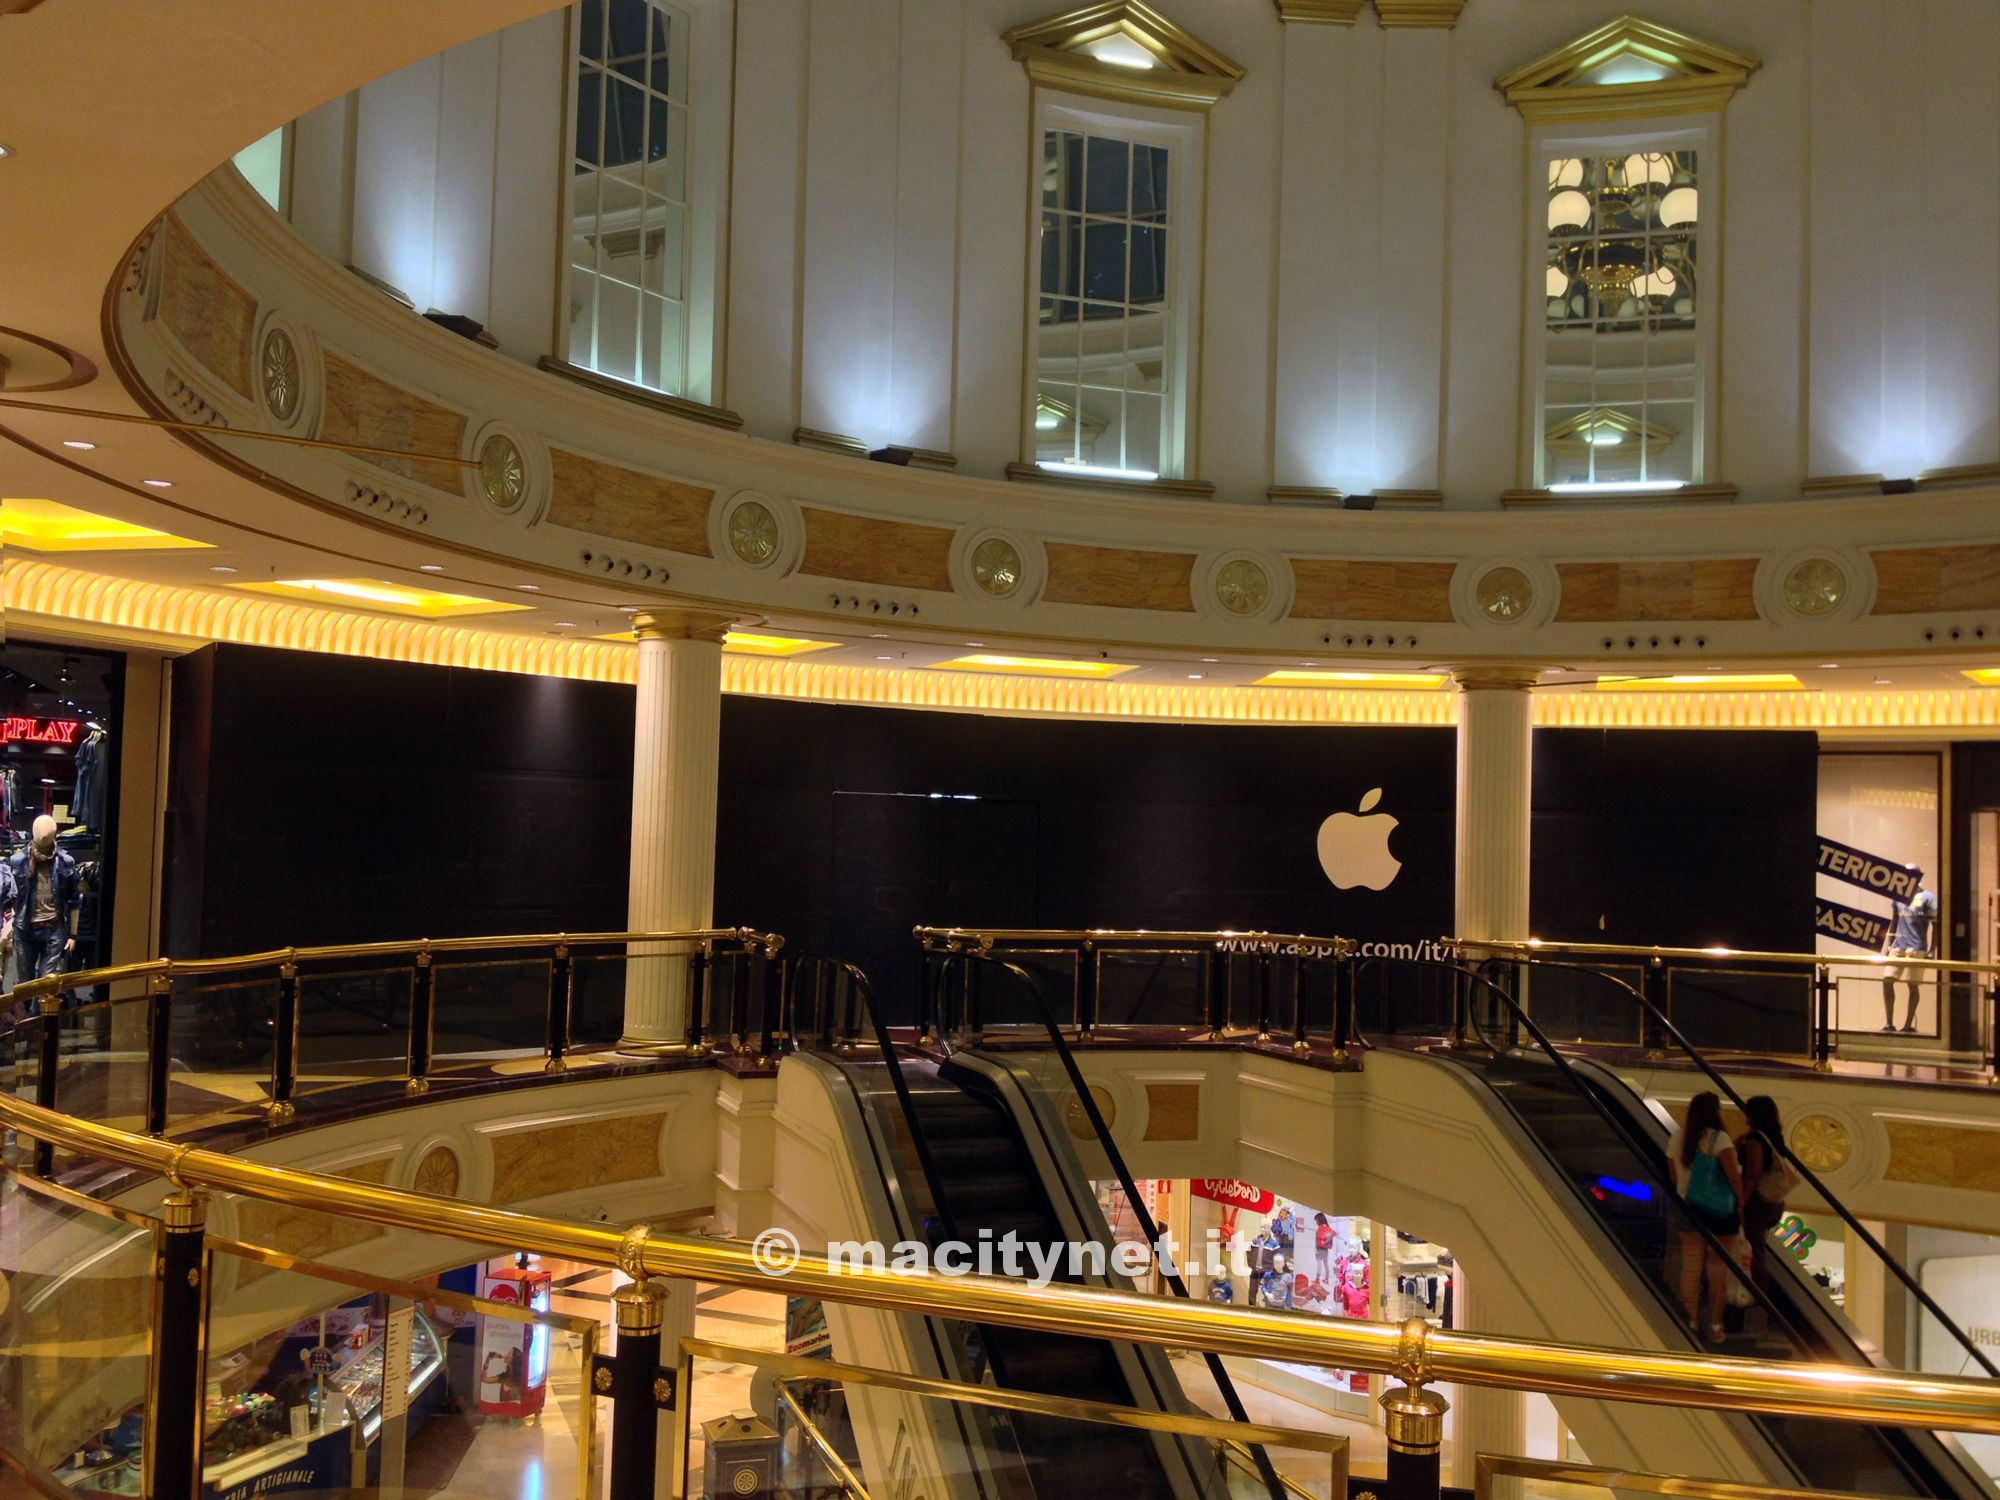 2013 08 28 - Apple Store Euroma 2